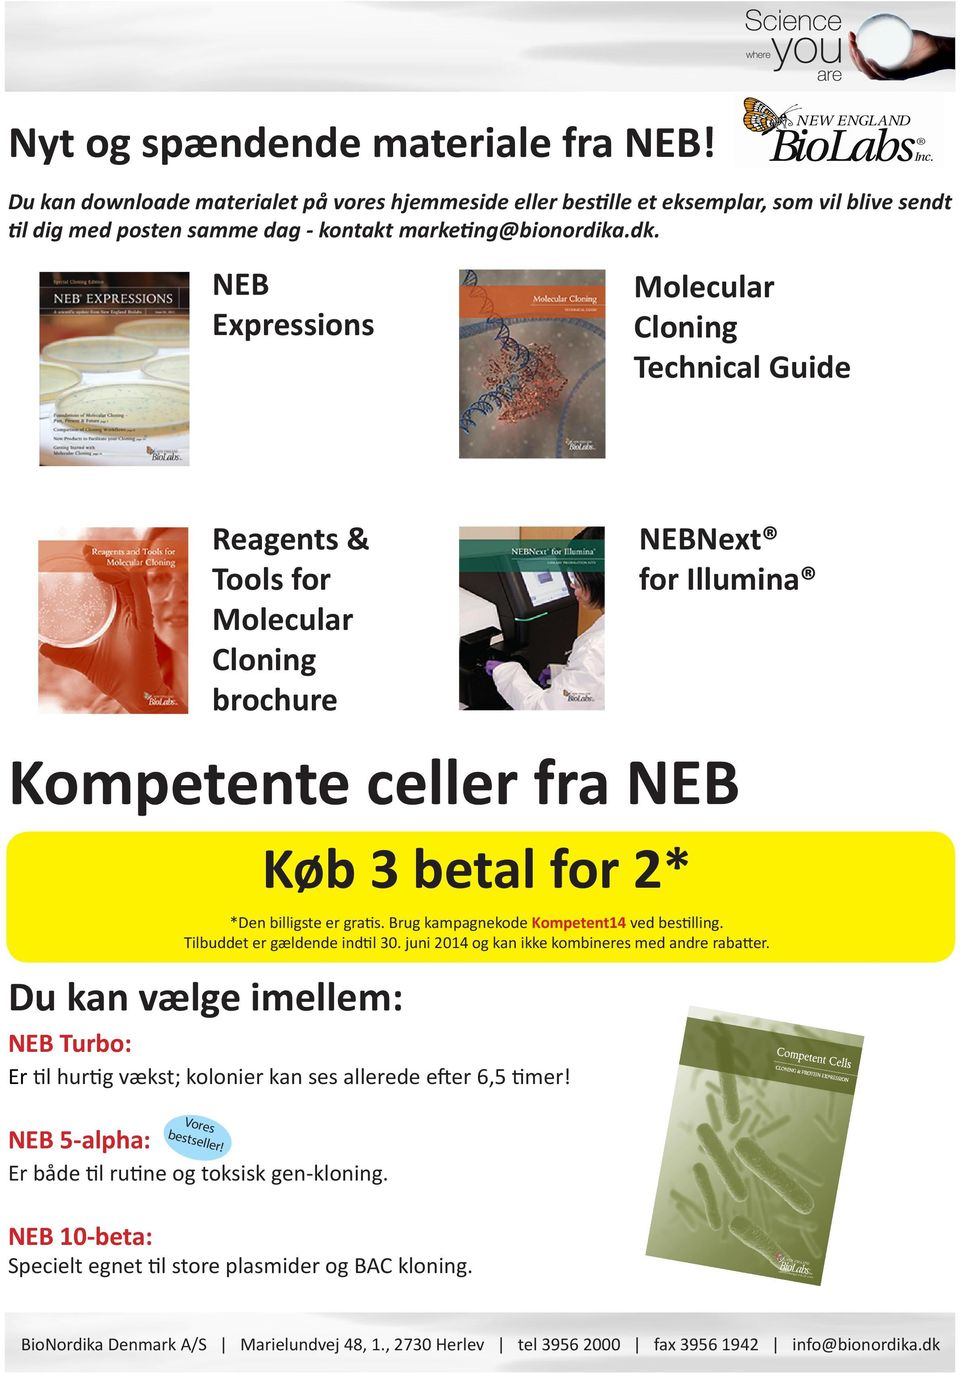 NEB Expressions Molecular Cloning Technical Guide Reagents & Tools for Molecular Cloning brochure NEBNext for Illumina Kompetente celler fra NEB Du kan vælge imellem: Køb 3 betal for 2*